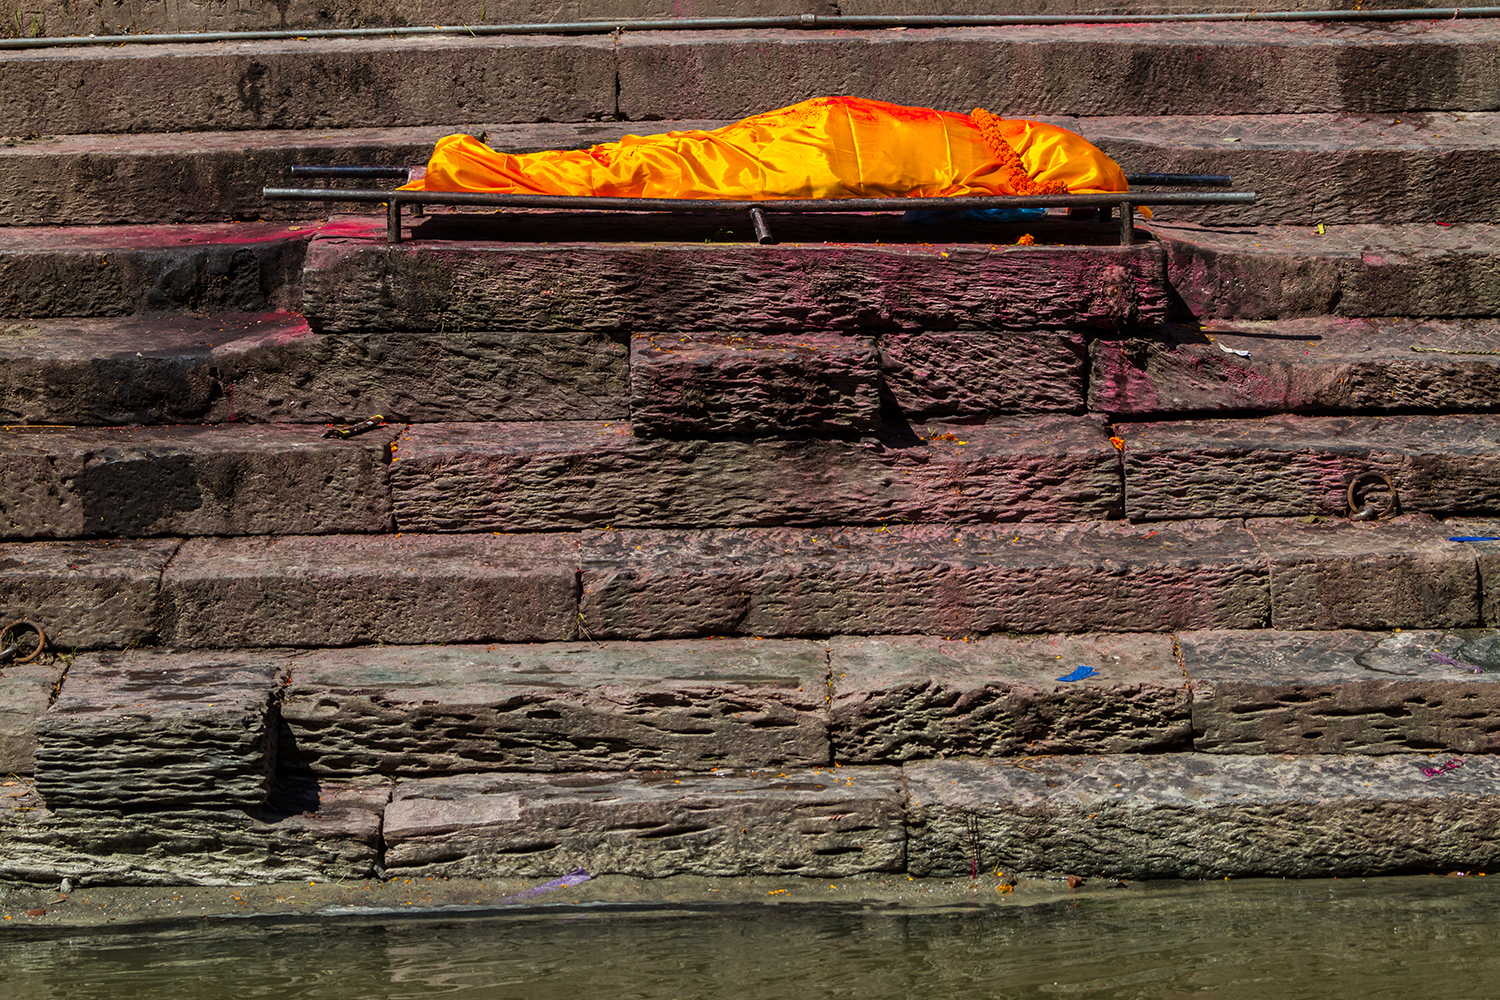 A body in Nepal breaks the rules of balance